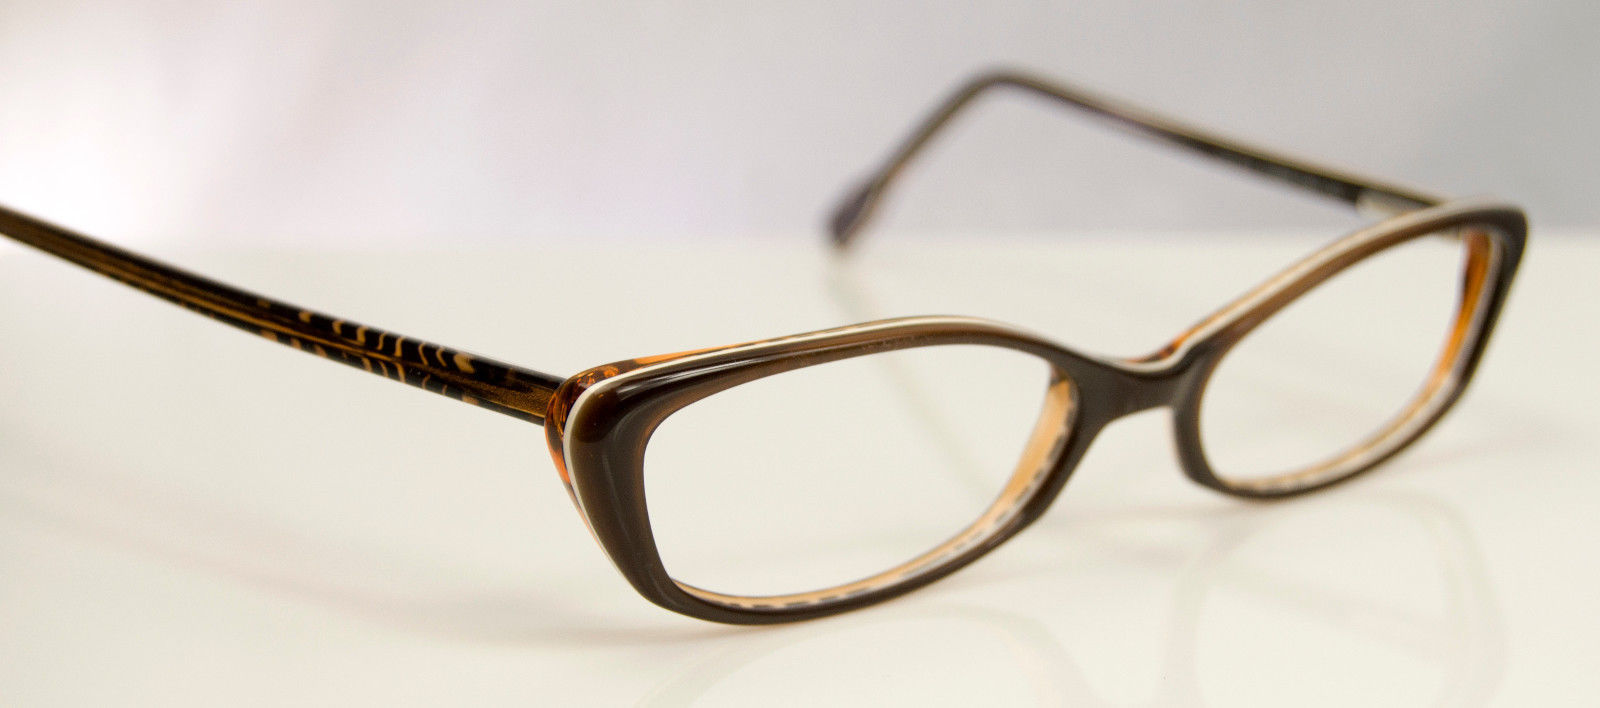 Vintage EX 1813 Made in Italy Eyeglass Frames 50-16-135 ...